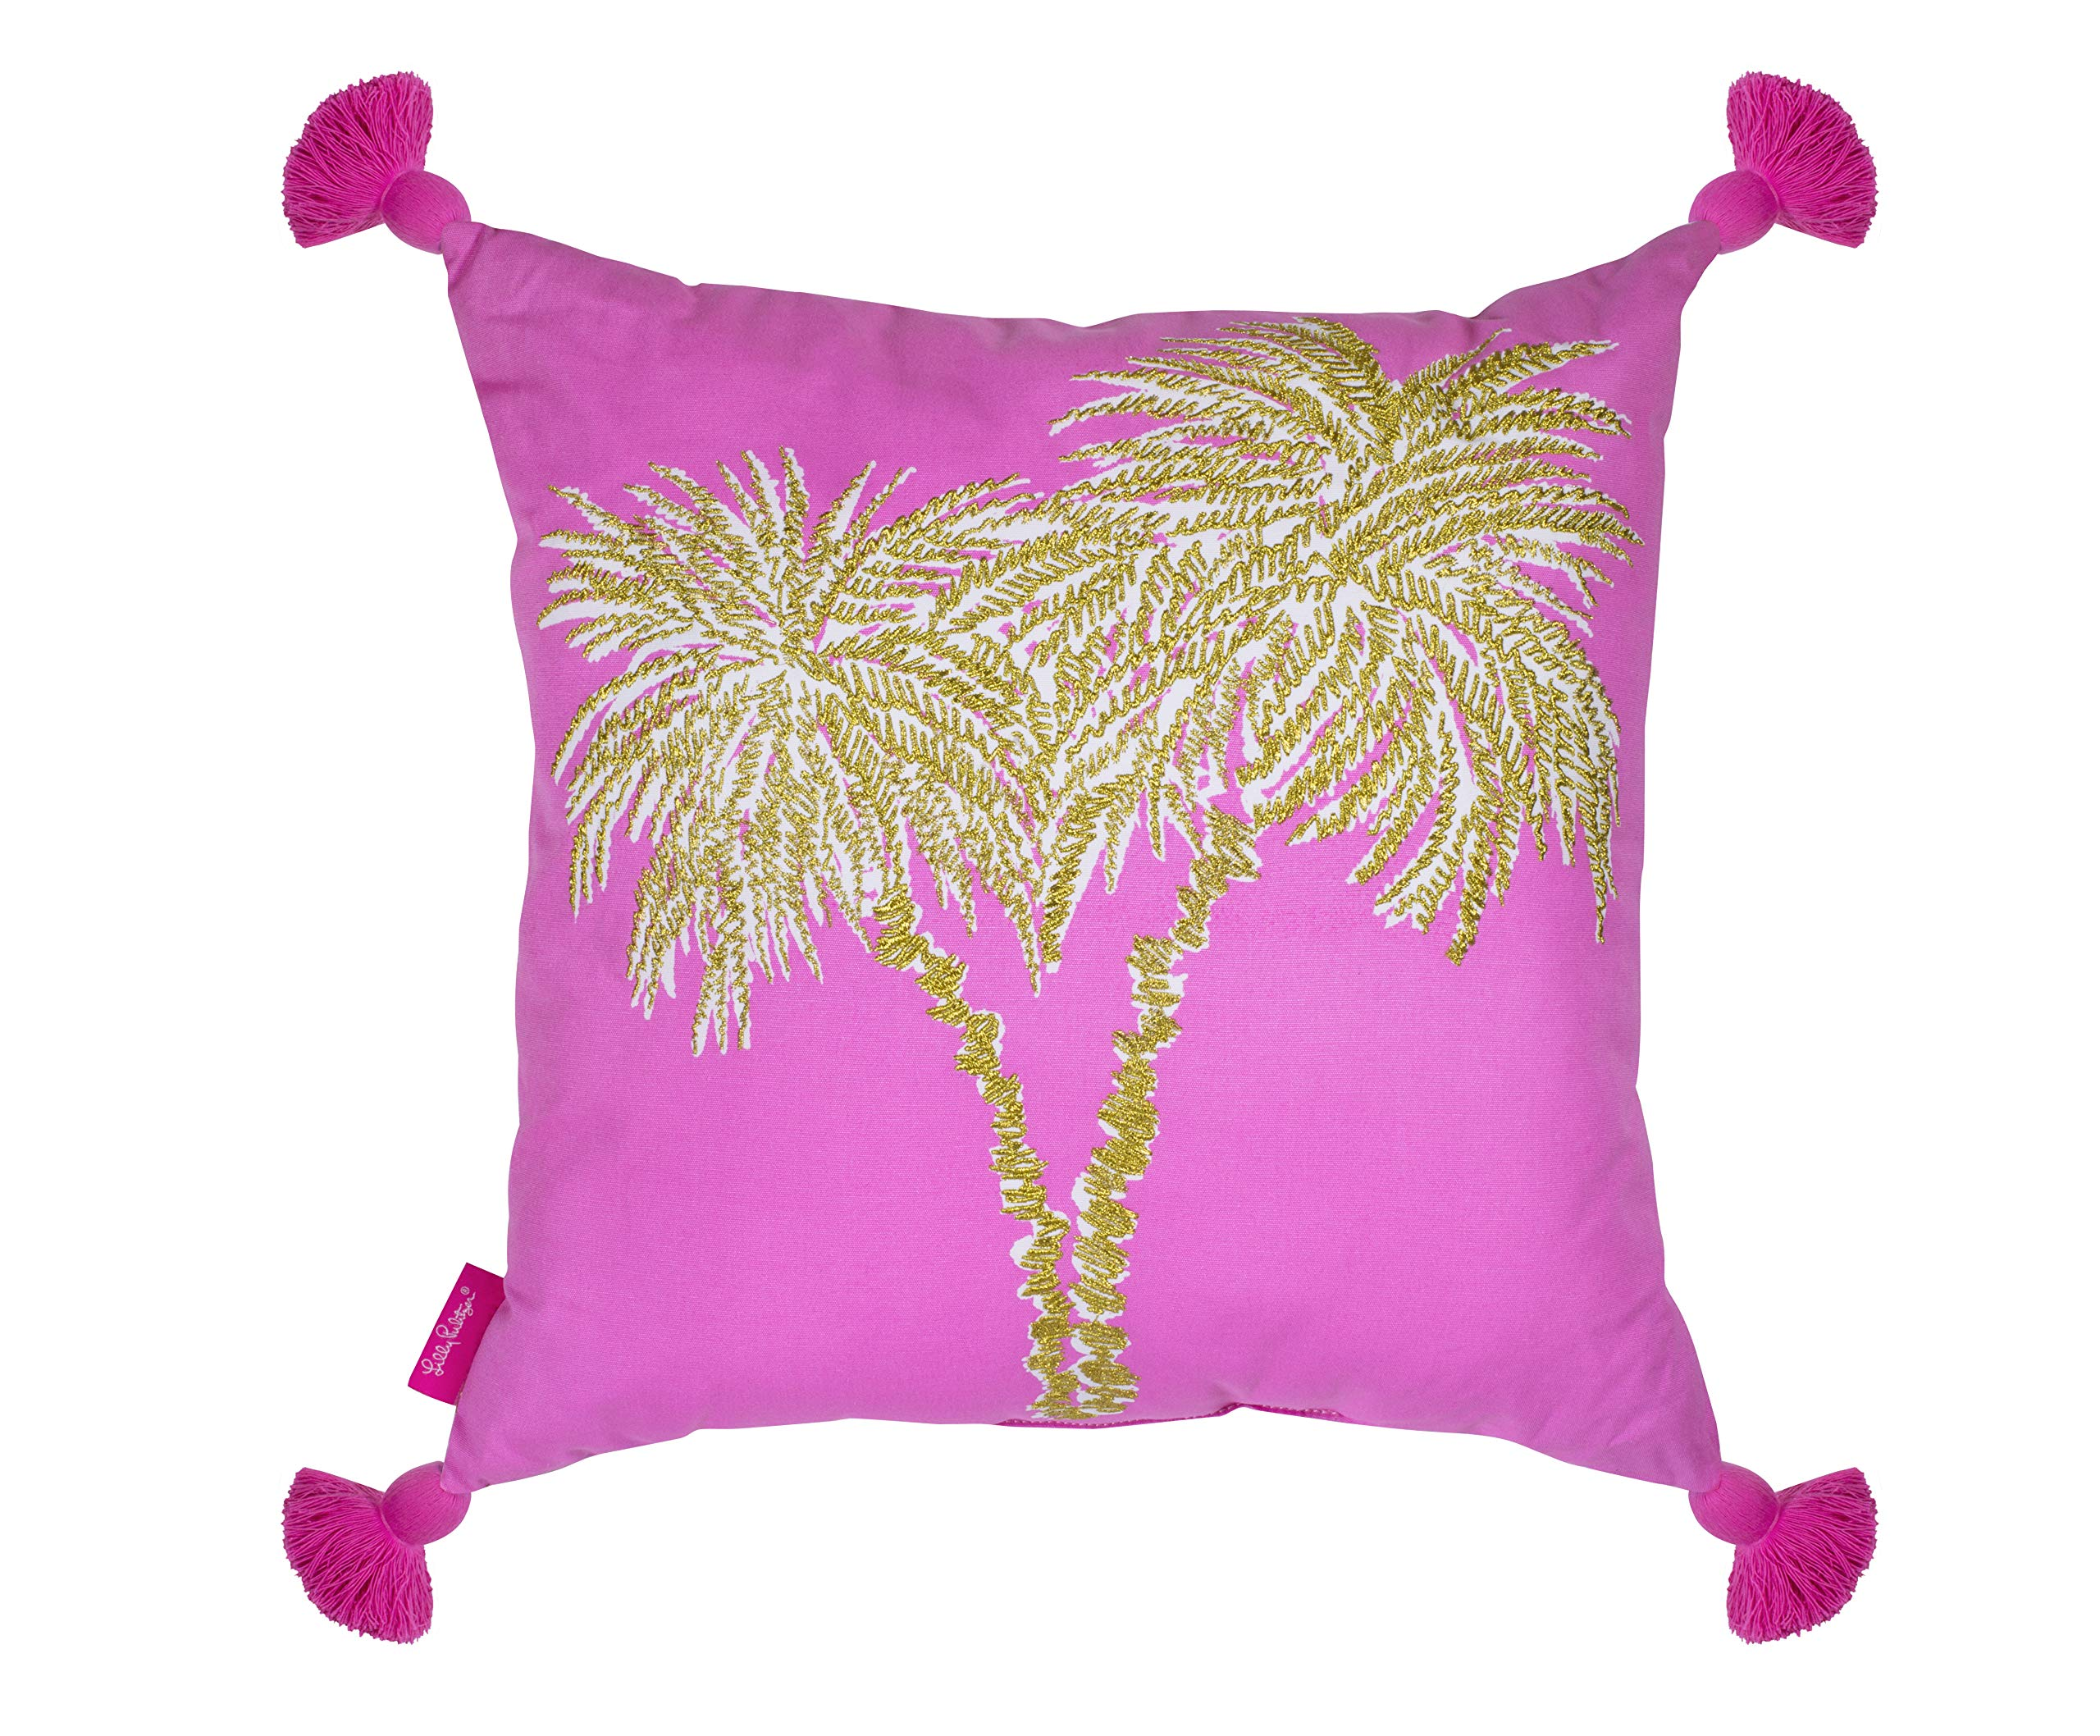 Lilly Pulitzer Indoor/Outdoor Large Decorative Pillow, Palms